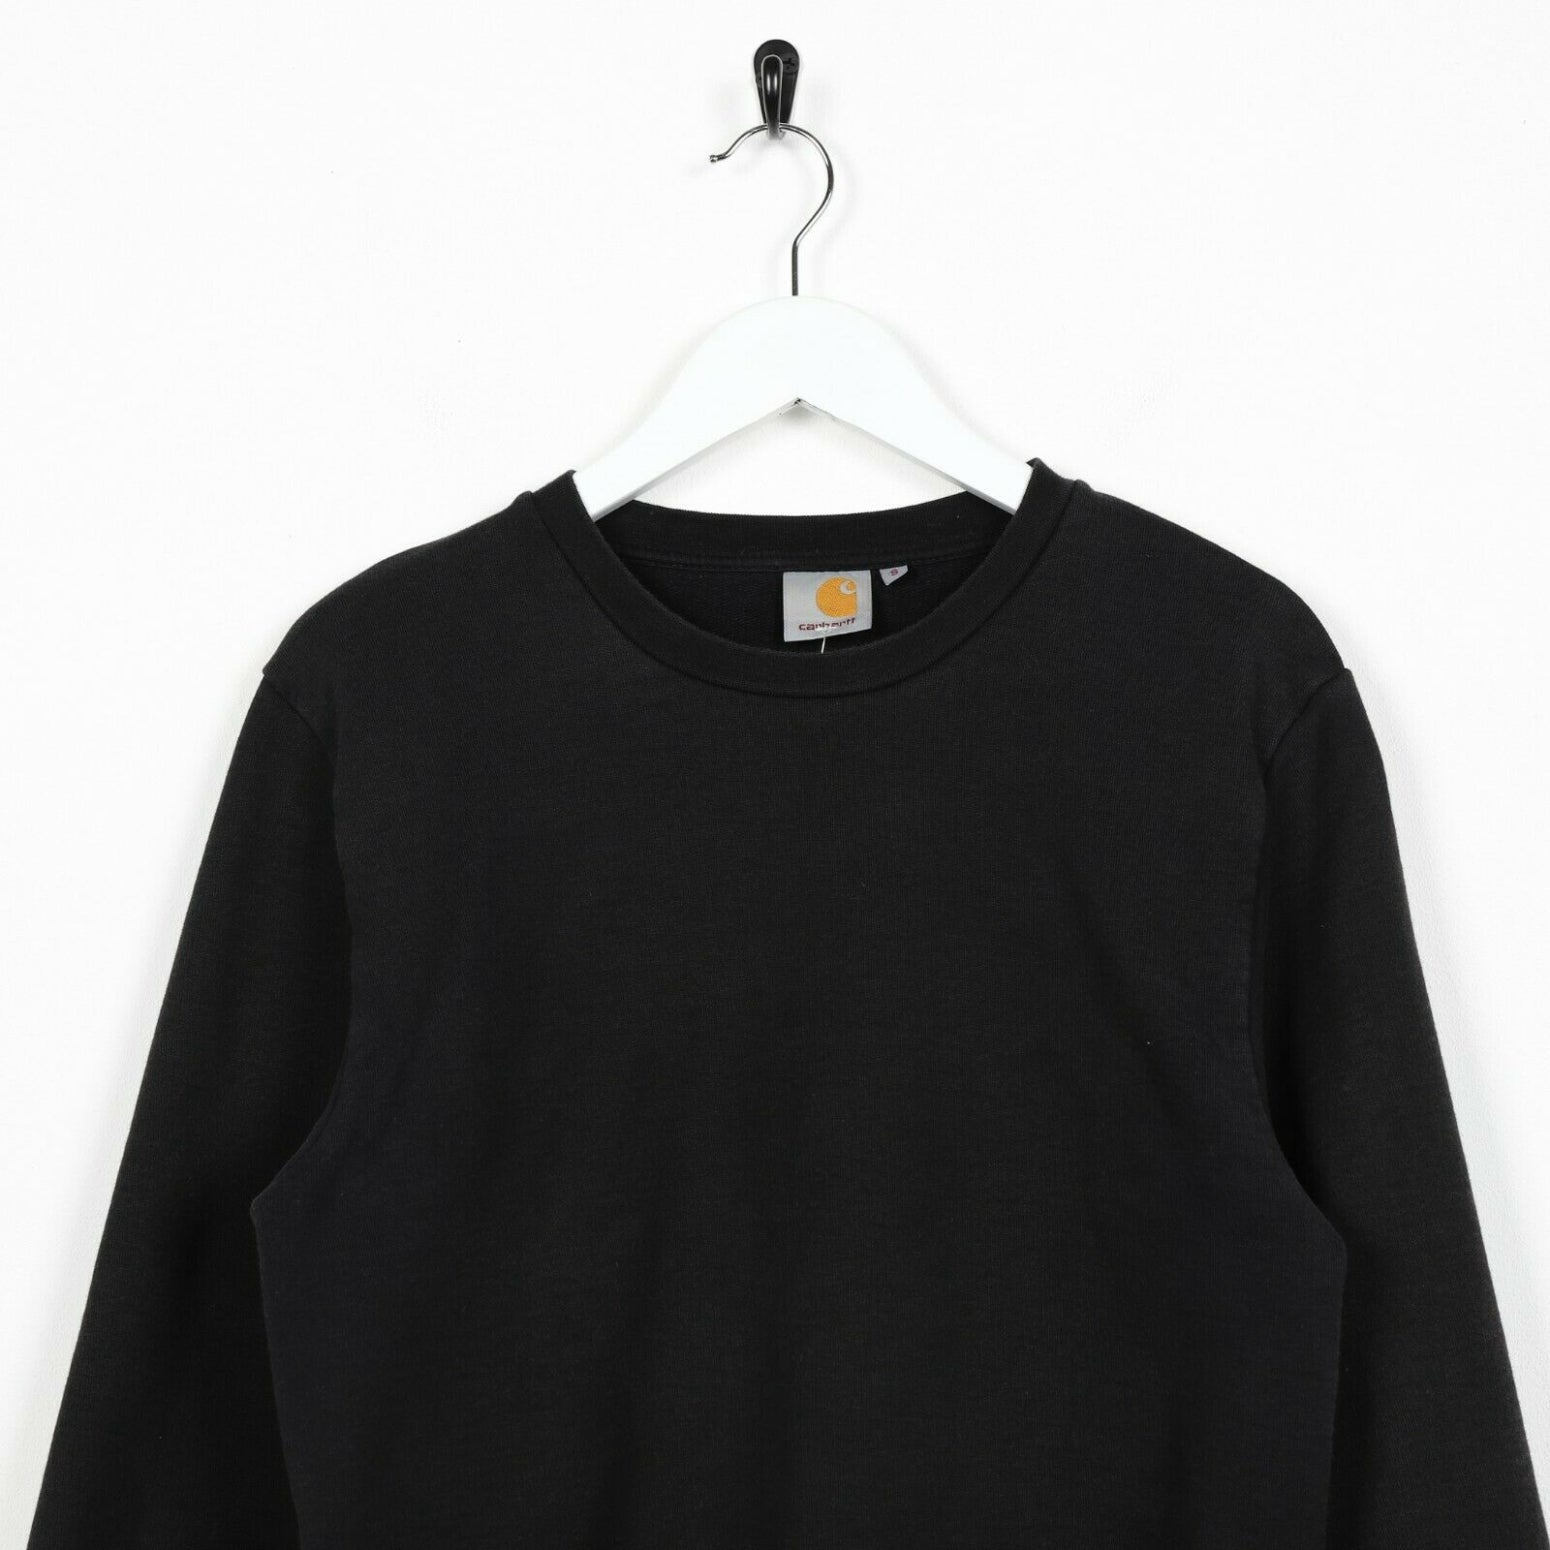 Vintage CARHARTT Small Logo Sweatshirt Jumper Black Grey | Small S